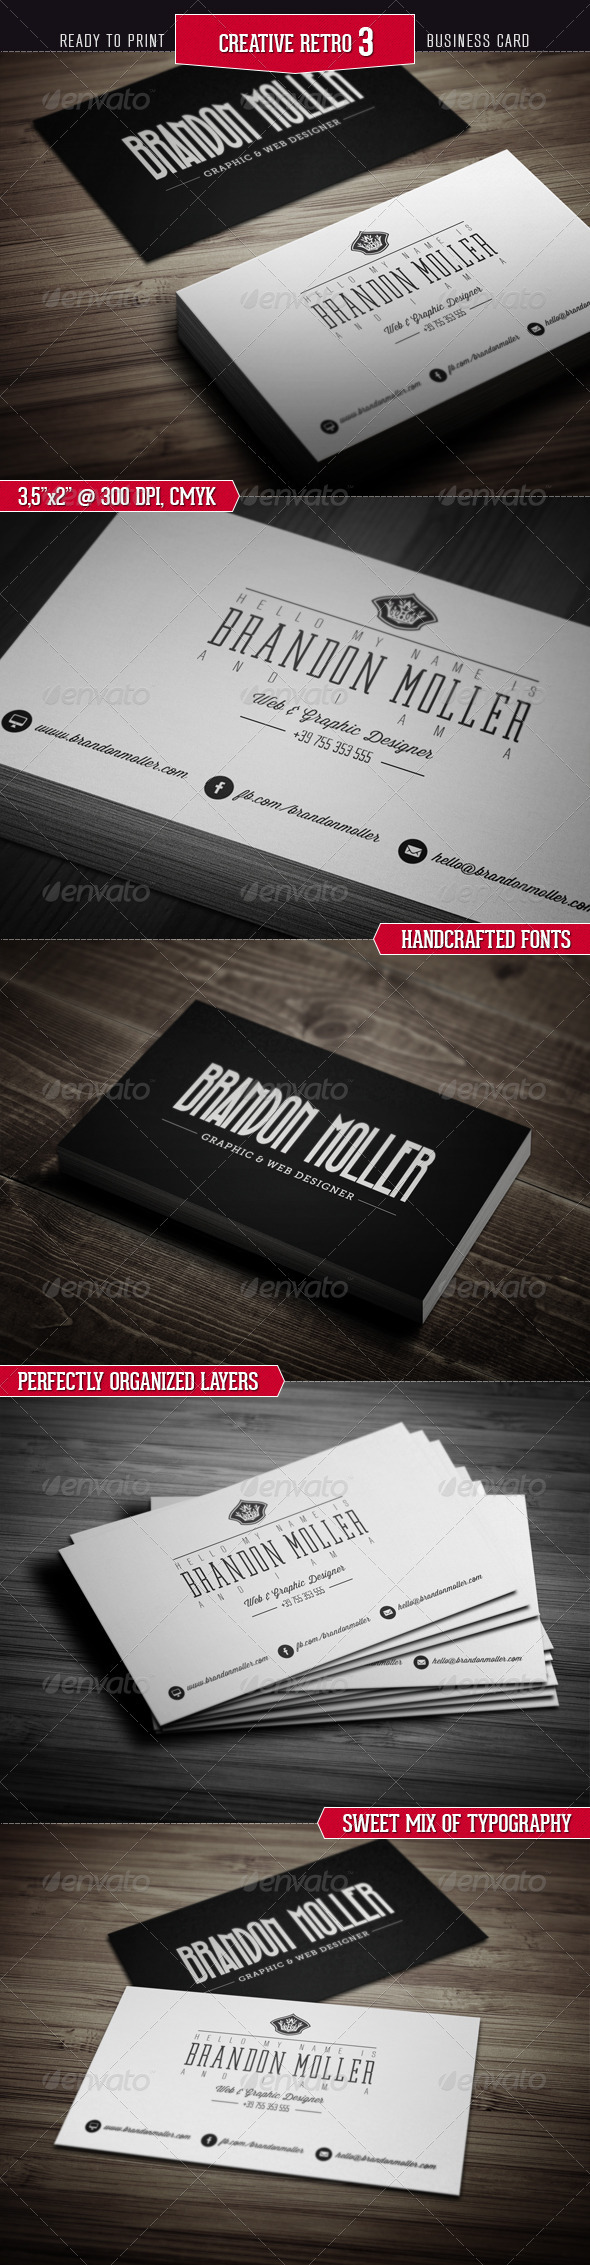 GraphicRiver Creative Retro Business Card 3 3186969